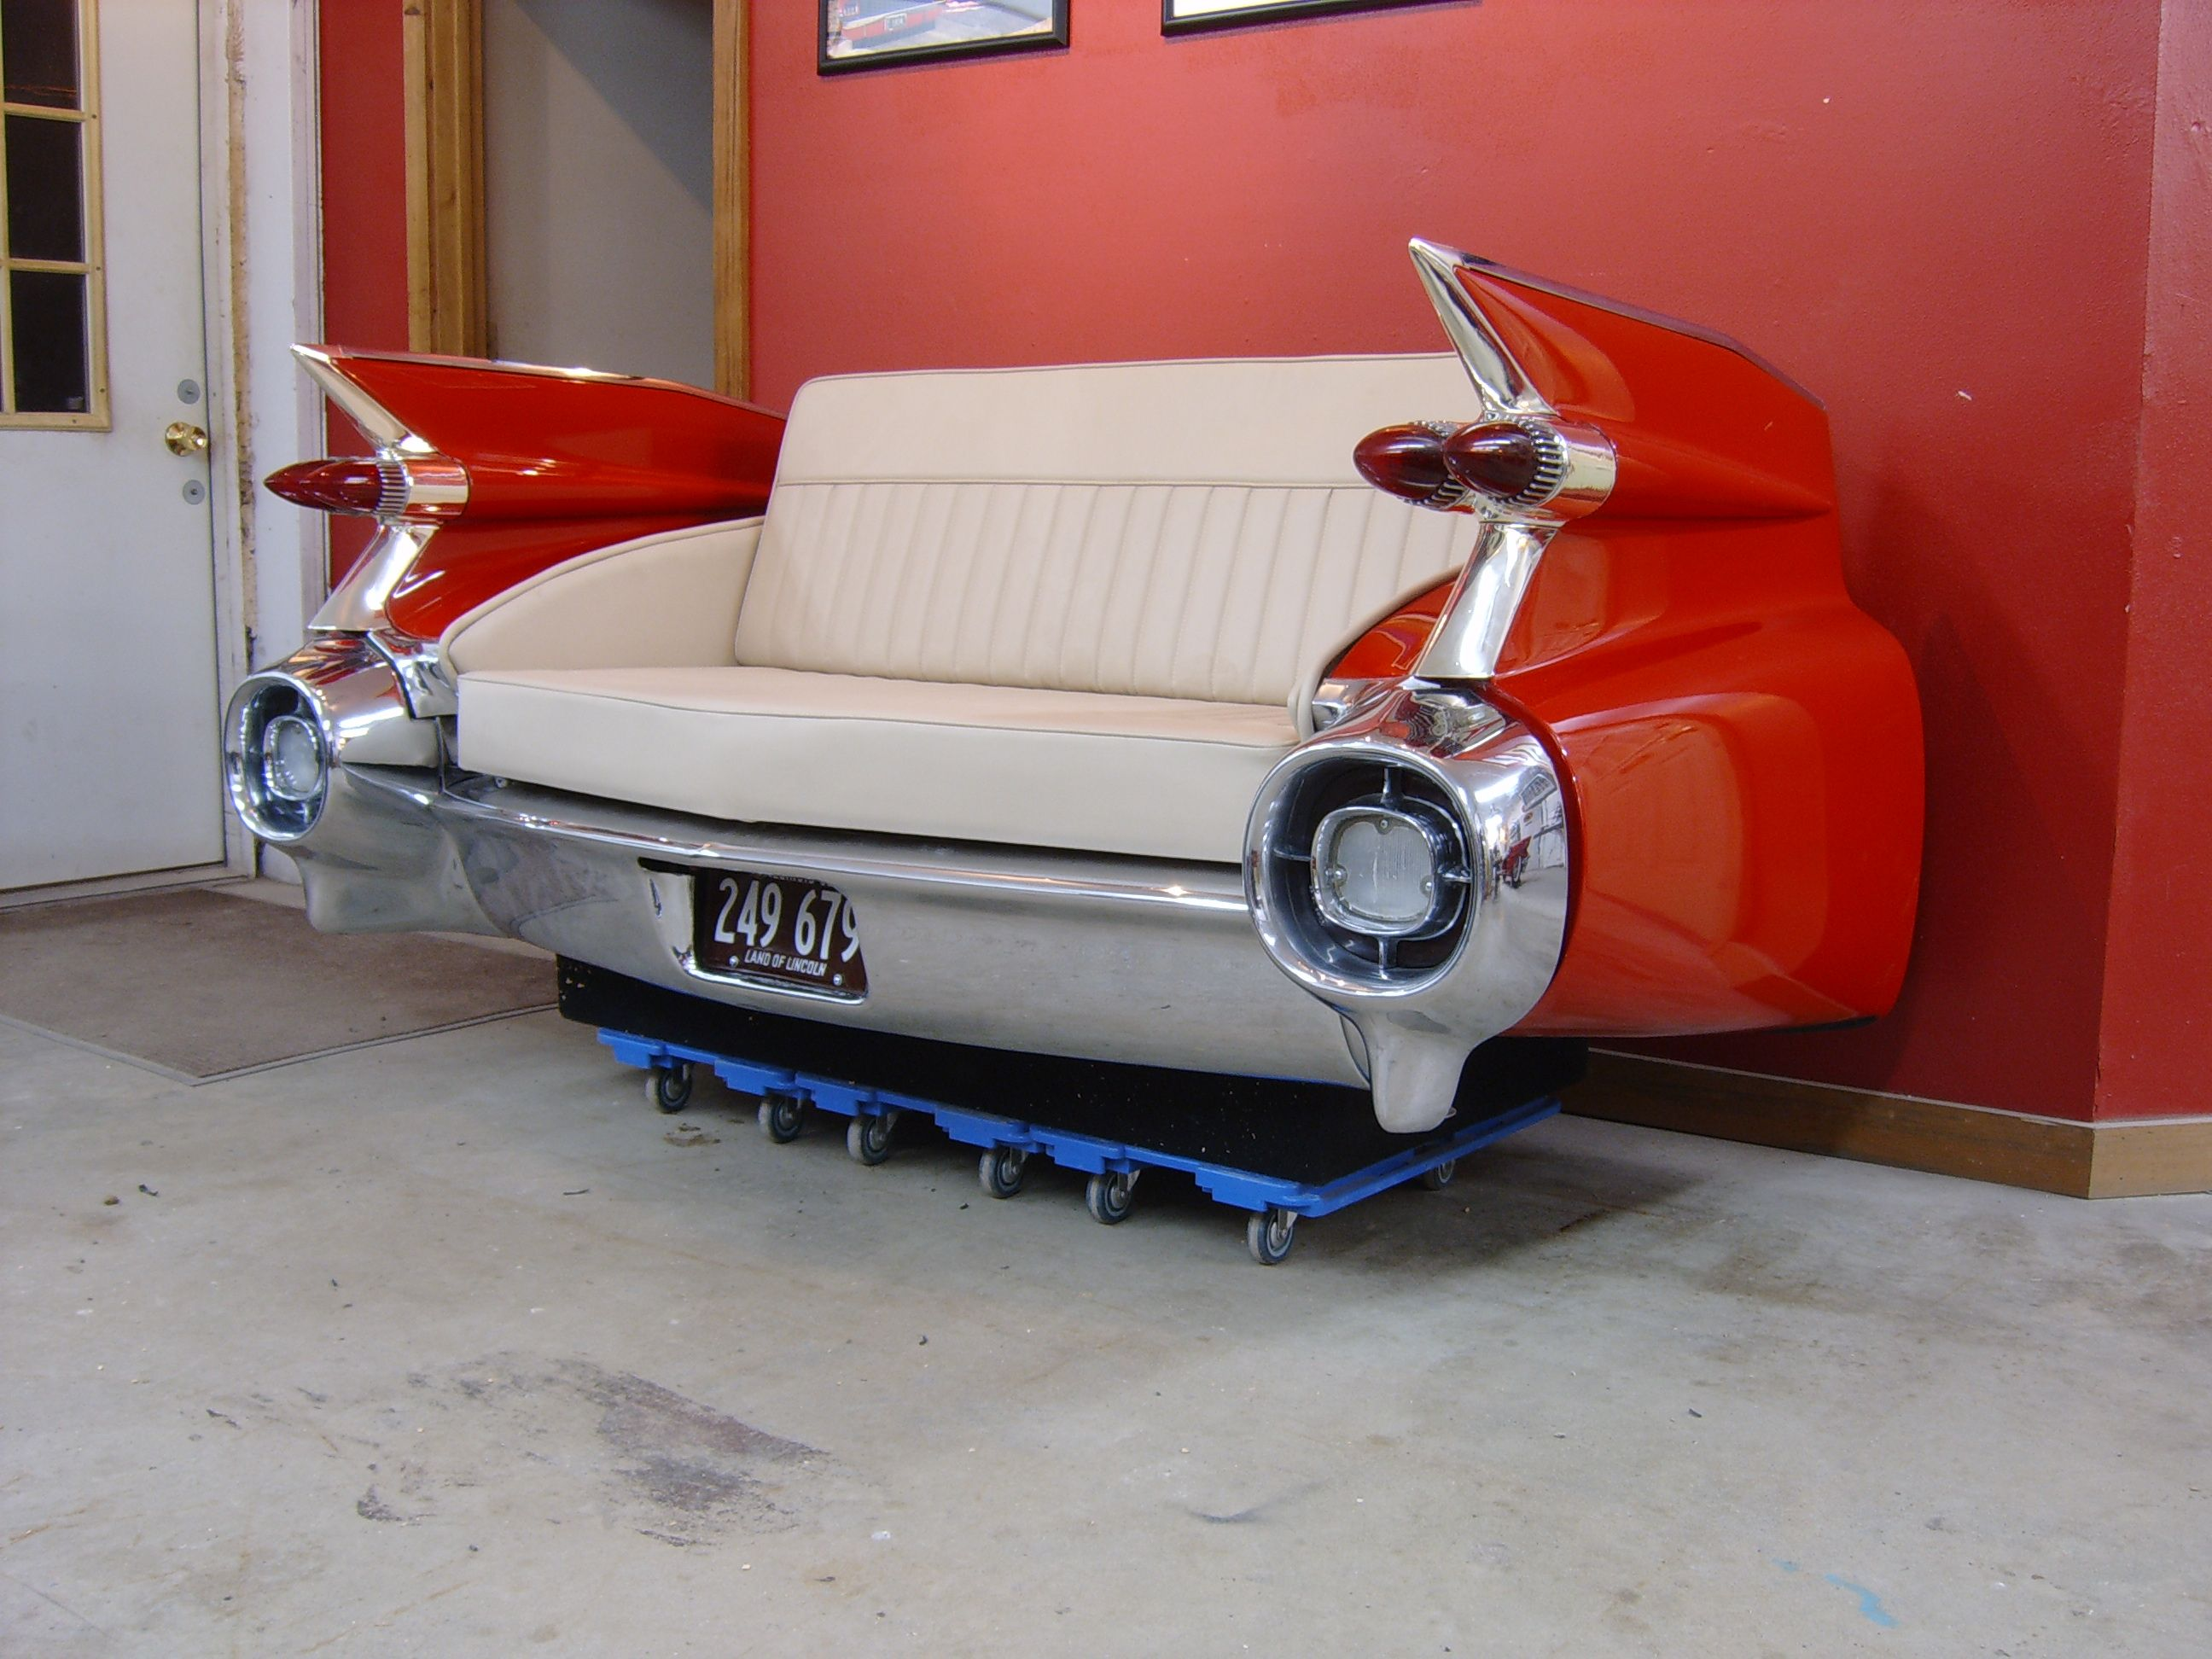 cars sofa chair wooden sets designs india cadillac couch garage and man cave pinterest unique